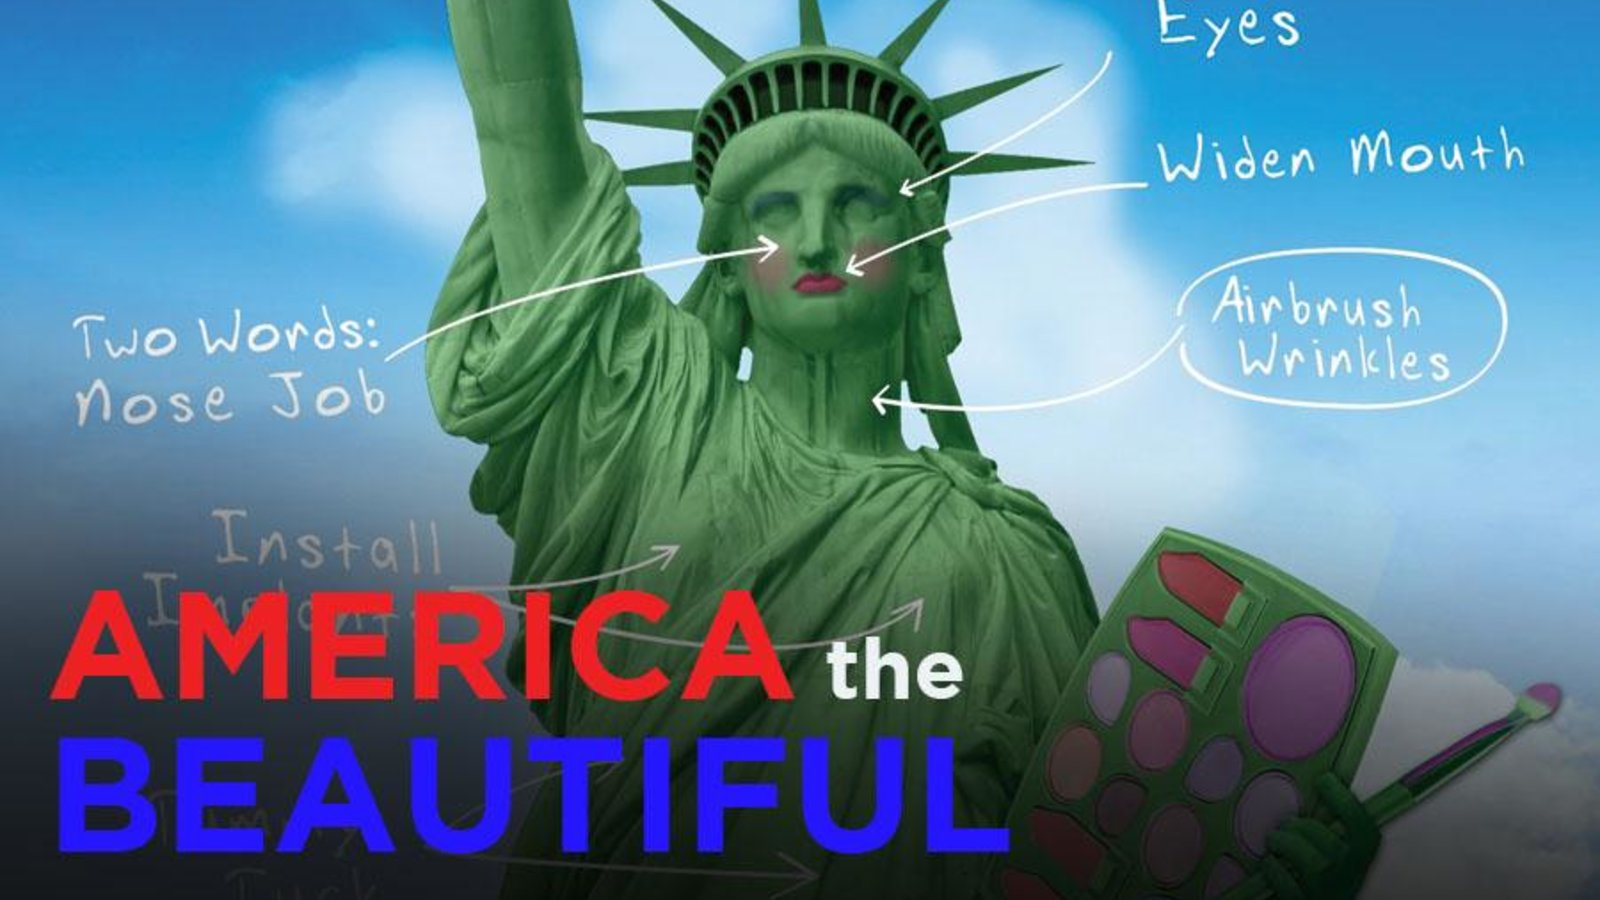 America the Beautiful - Obsession with Physical Beauty in America